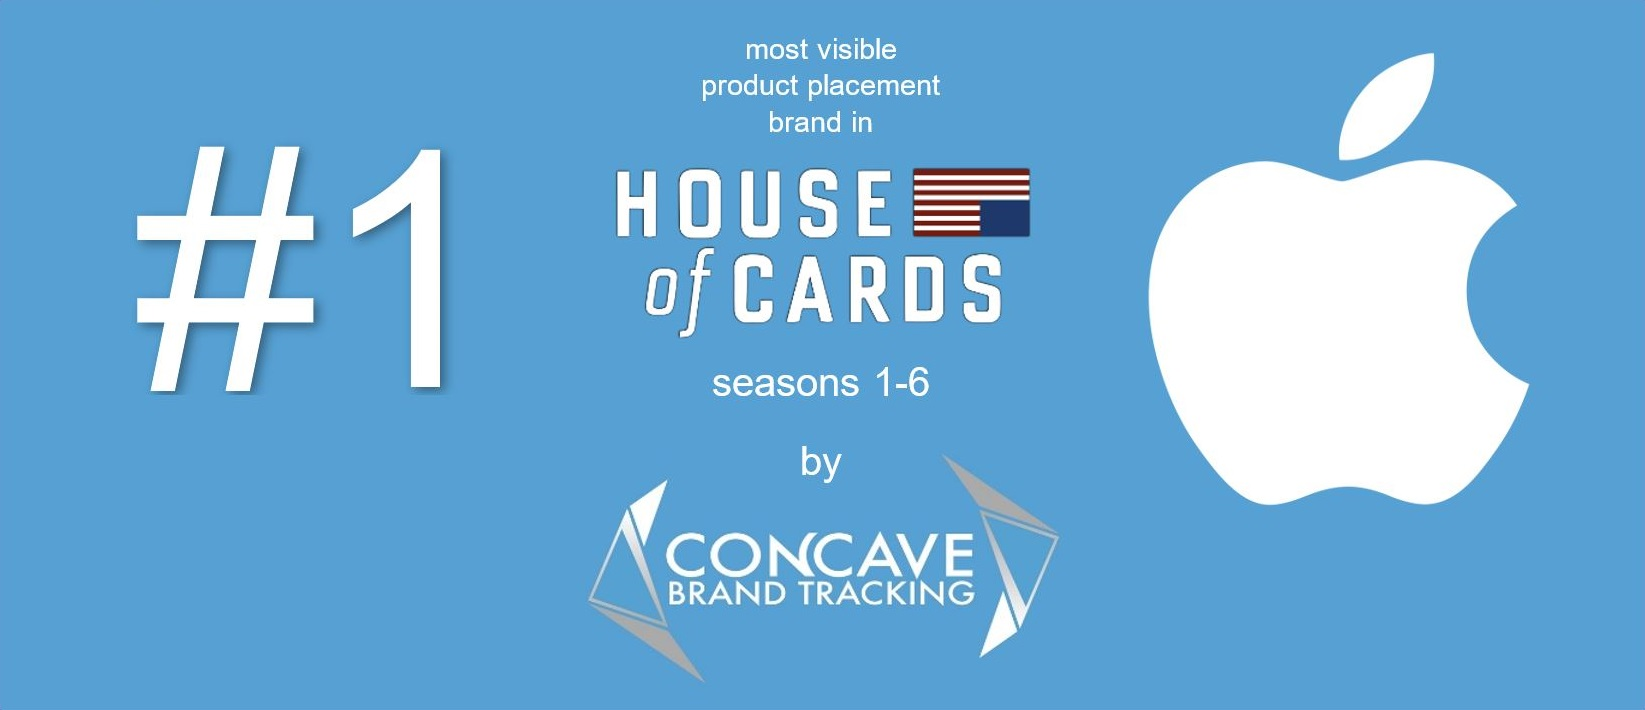 Apple apple #1 1 10 most visible product placement brand in HOUSE OF CARDS Concave Brand Tracking